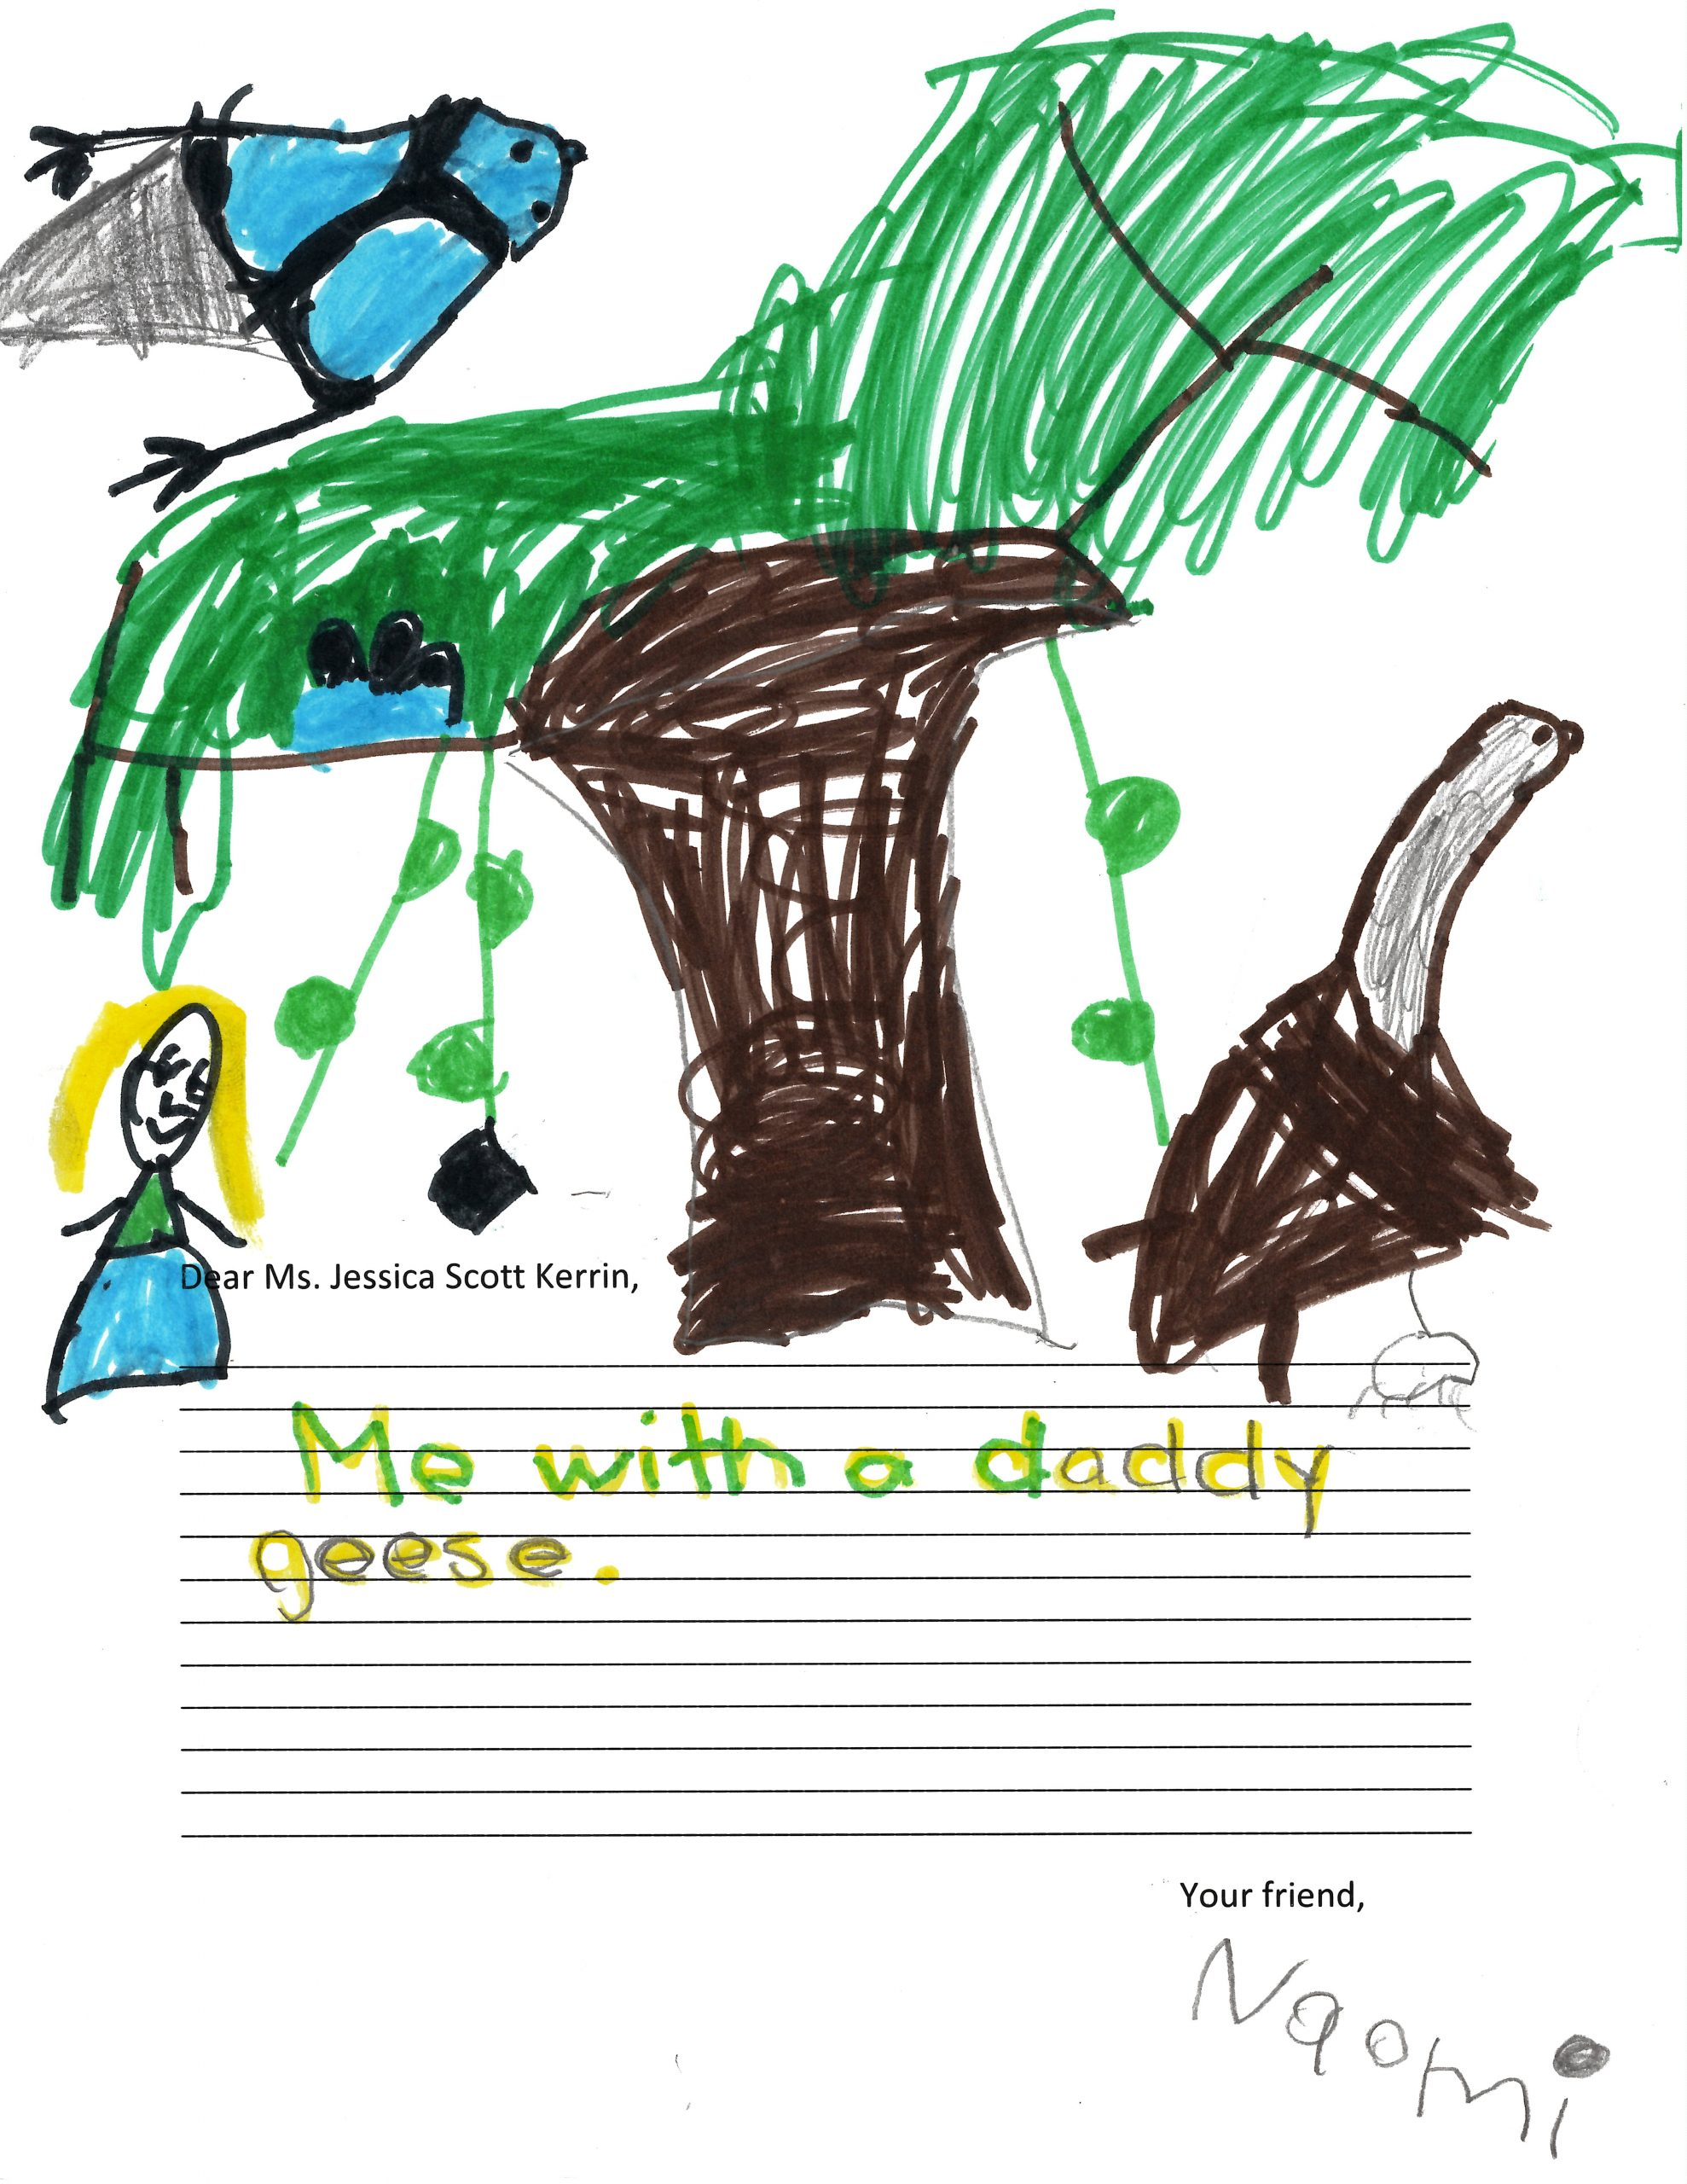 Child's drawing of birds and a tree